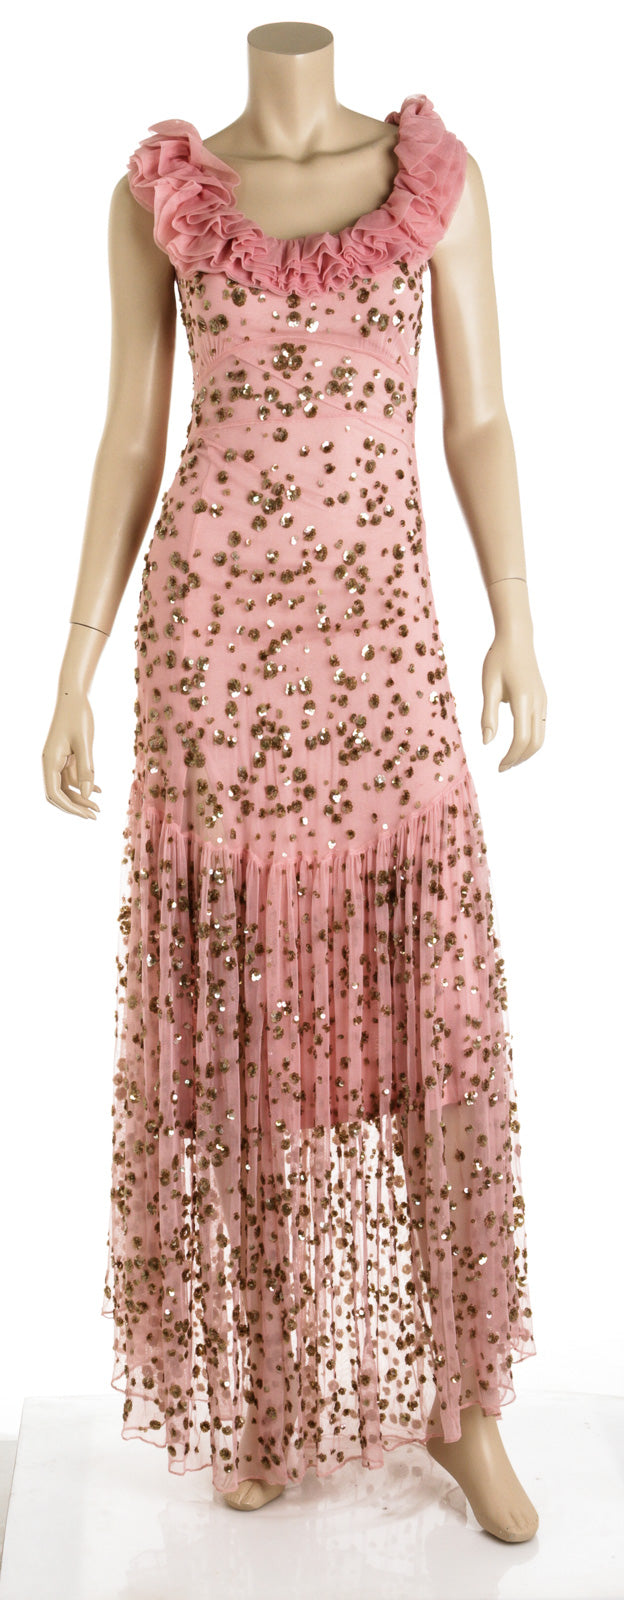 LoveShackFancy Pink Lilliana Dress (Size 2)